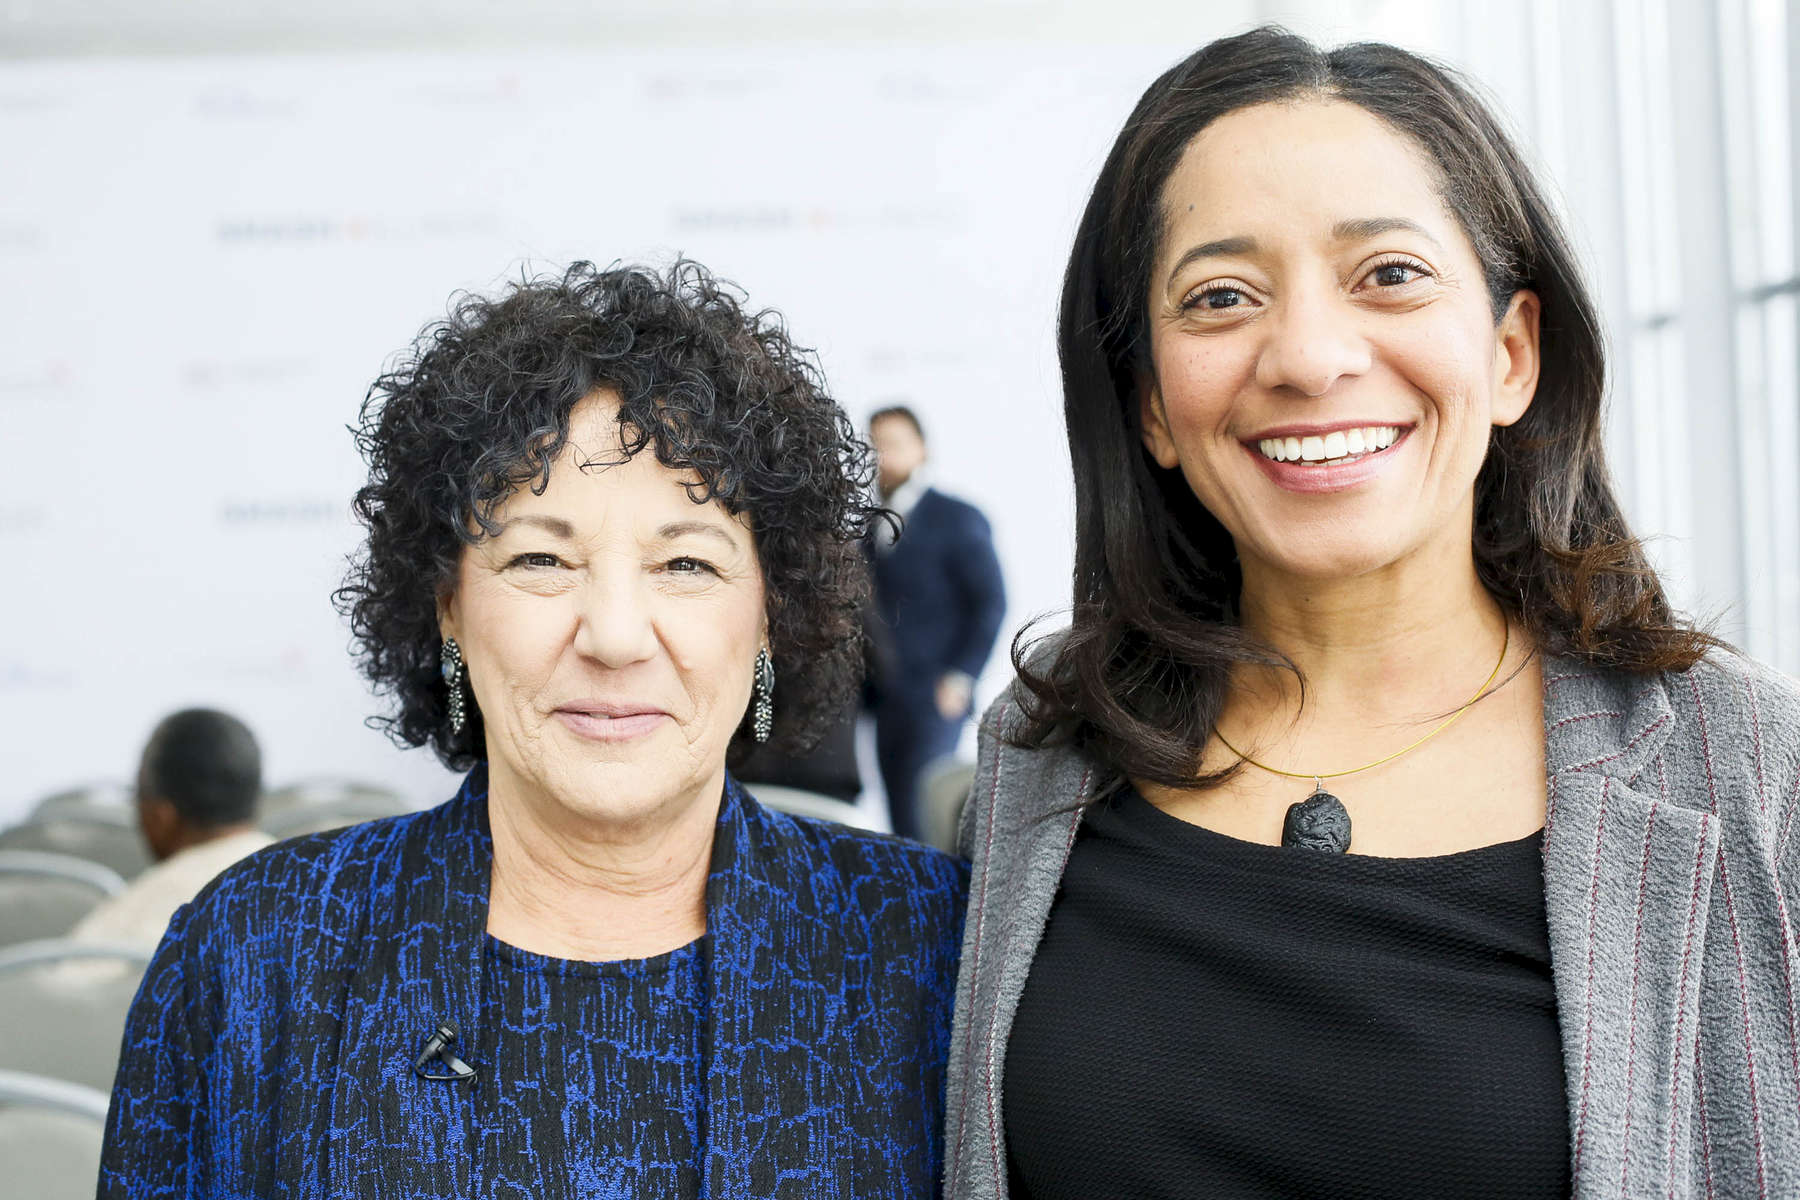 Dr. Freada Kapor Klein, Founder of SMASH, Partner at Kapor Capital, (left) poses for photos at the SMASH Illinois launch in Chicago, Illinois on January 24, 2019.